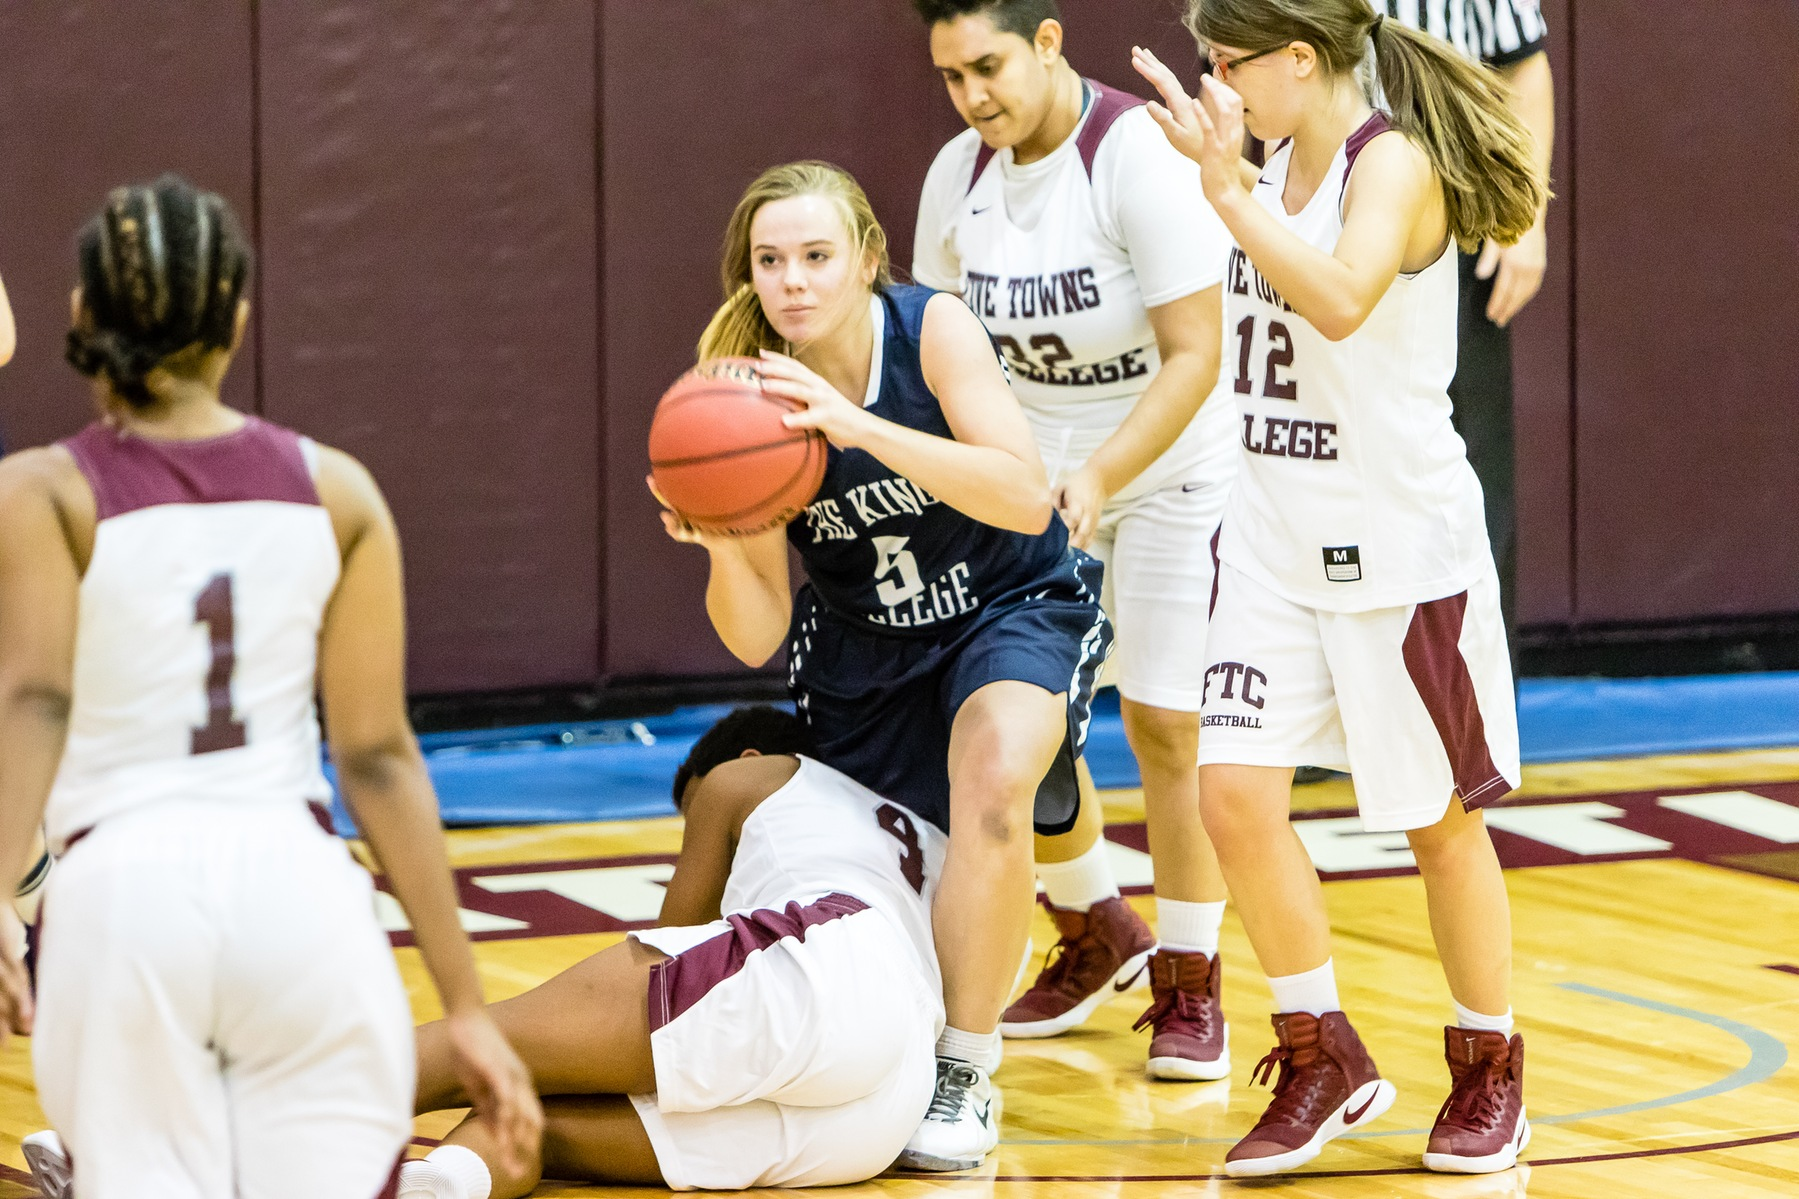 Women's Basketball Outlasted by Vaughn